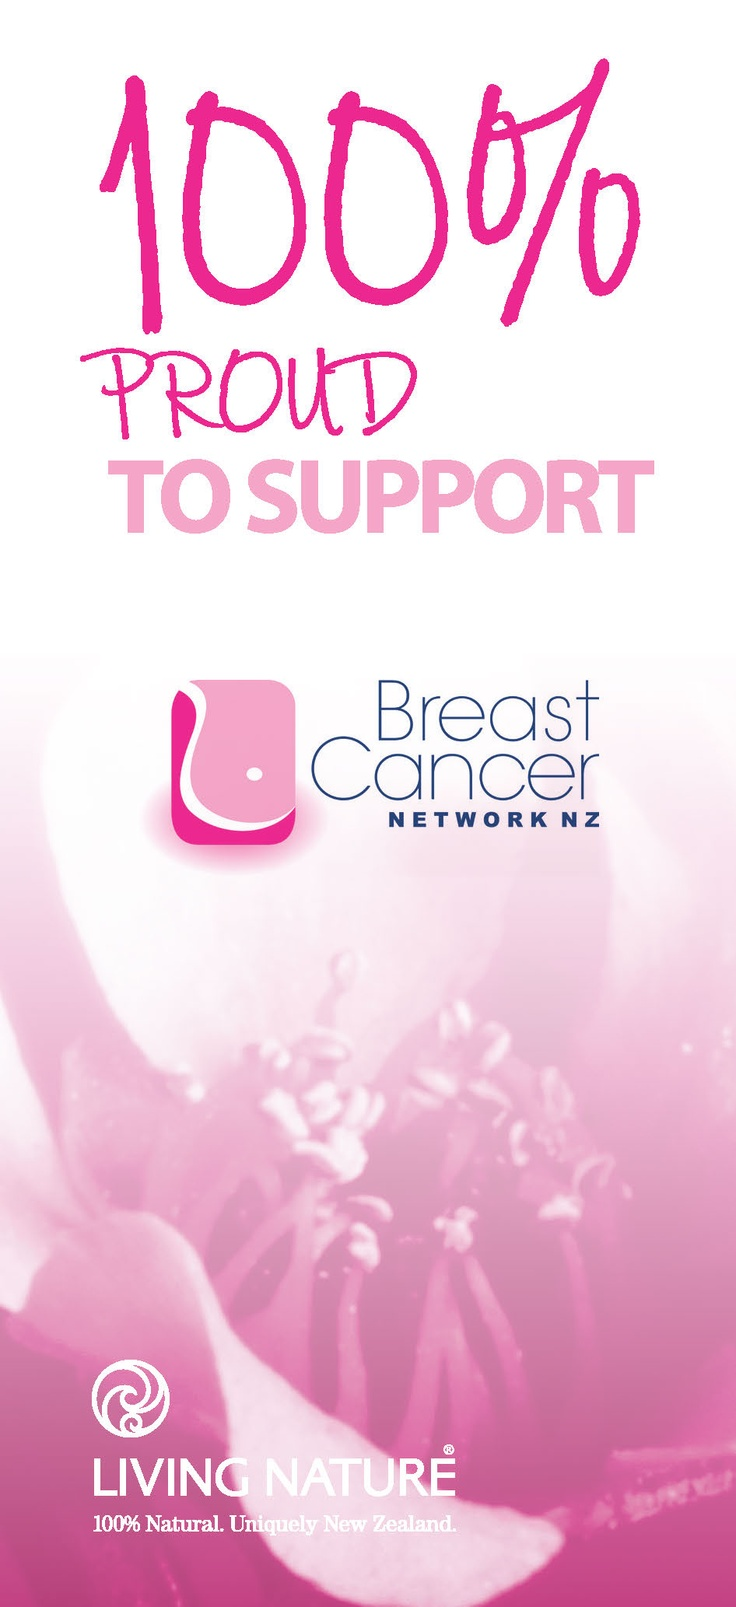 Living Nature is recognised by New Zealand's Breast Cancer Network as their inaugural Supporter Member - endorsed by them as above reproach in our products and practices and commitment to helping keep women safe and healthy through education.